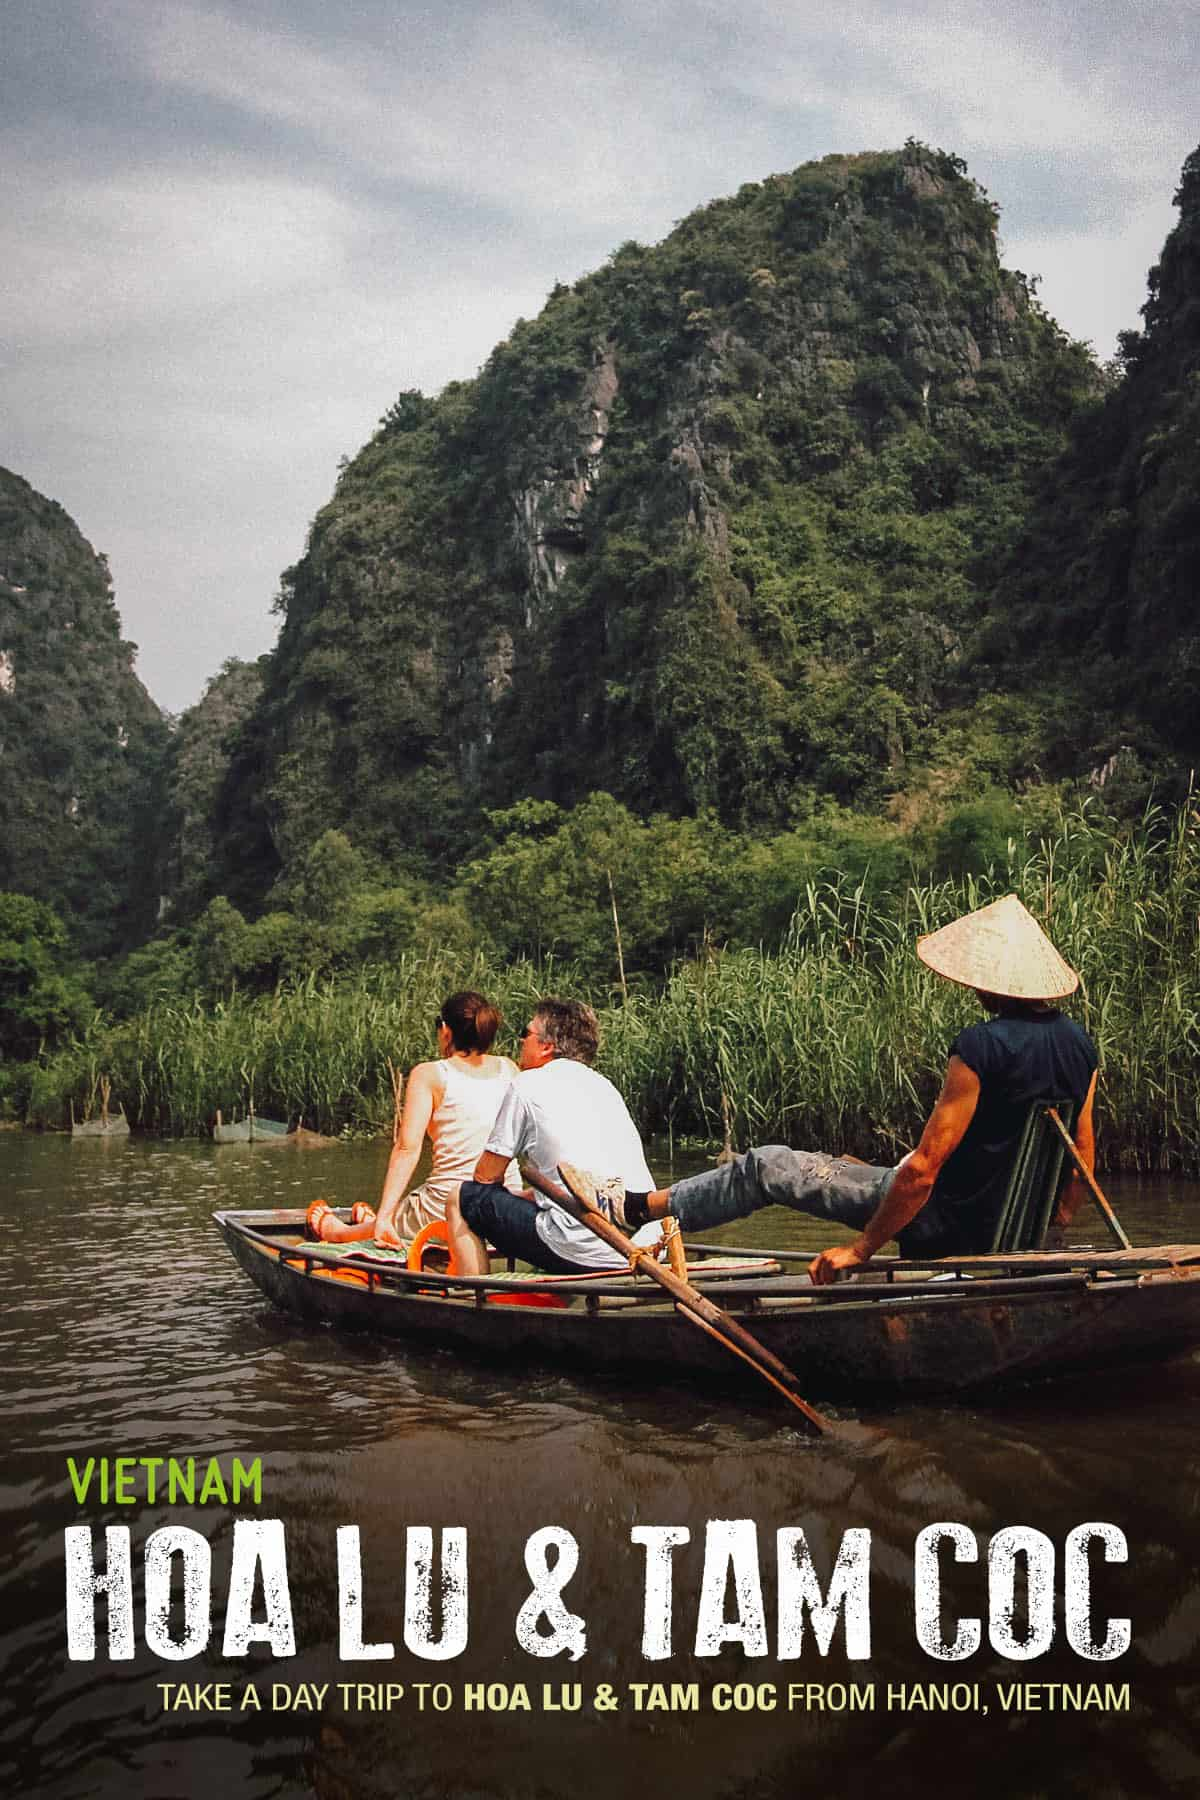 Cruising on the Tam Coc River in northern Vietnam